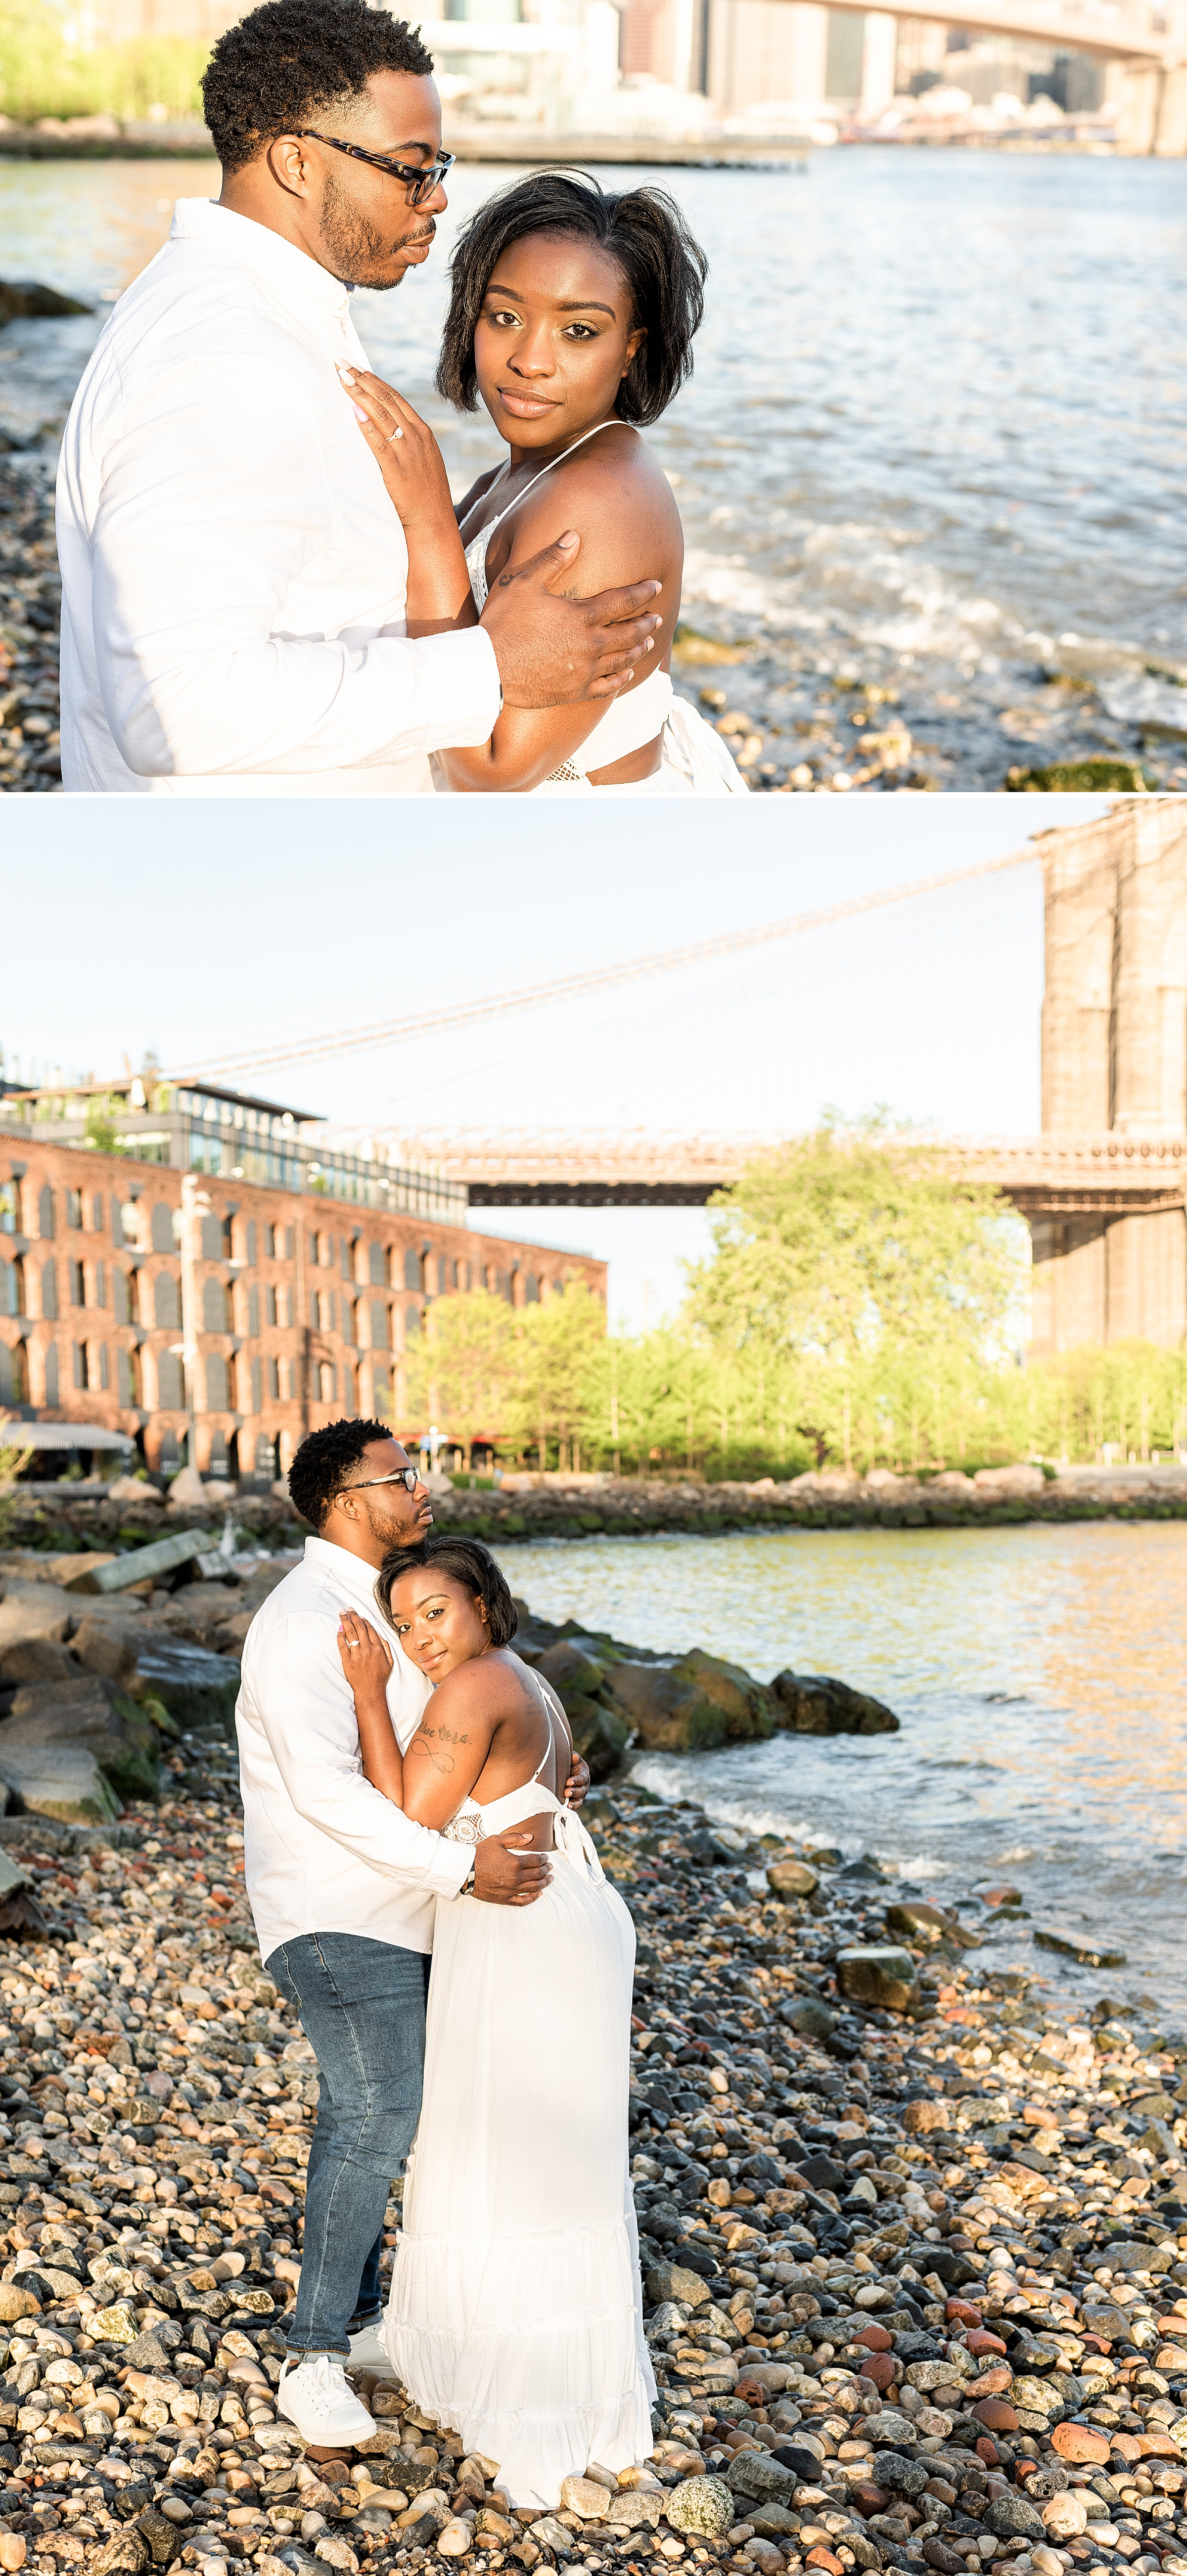 Happily engaged couple at Pebble Beach in DUMBO Brooklyn NYC